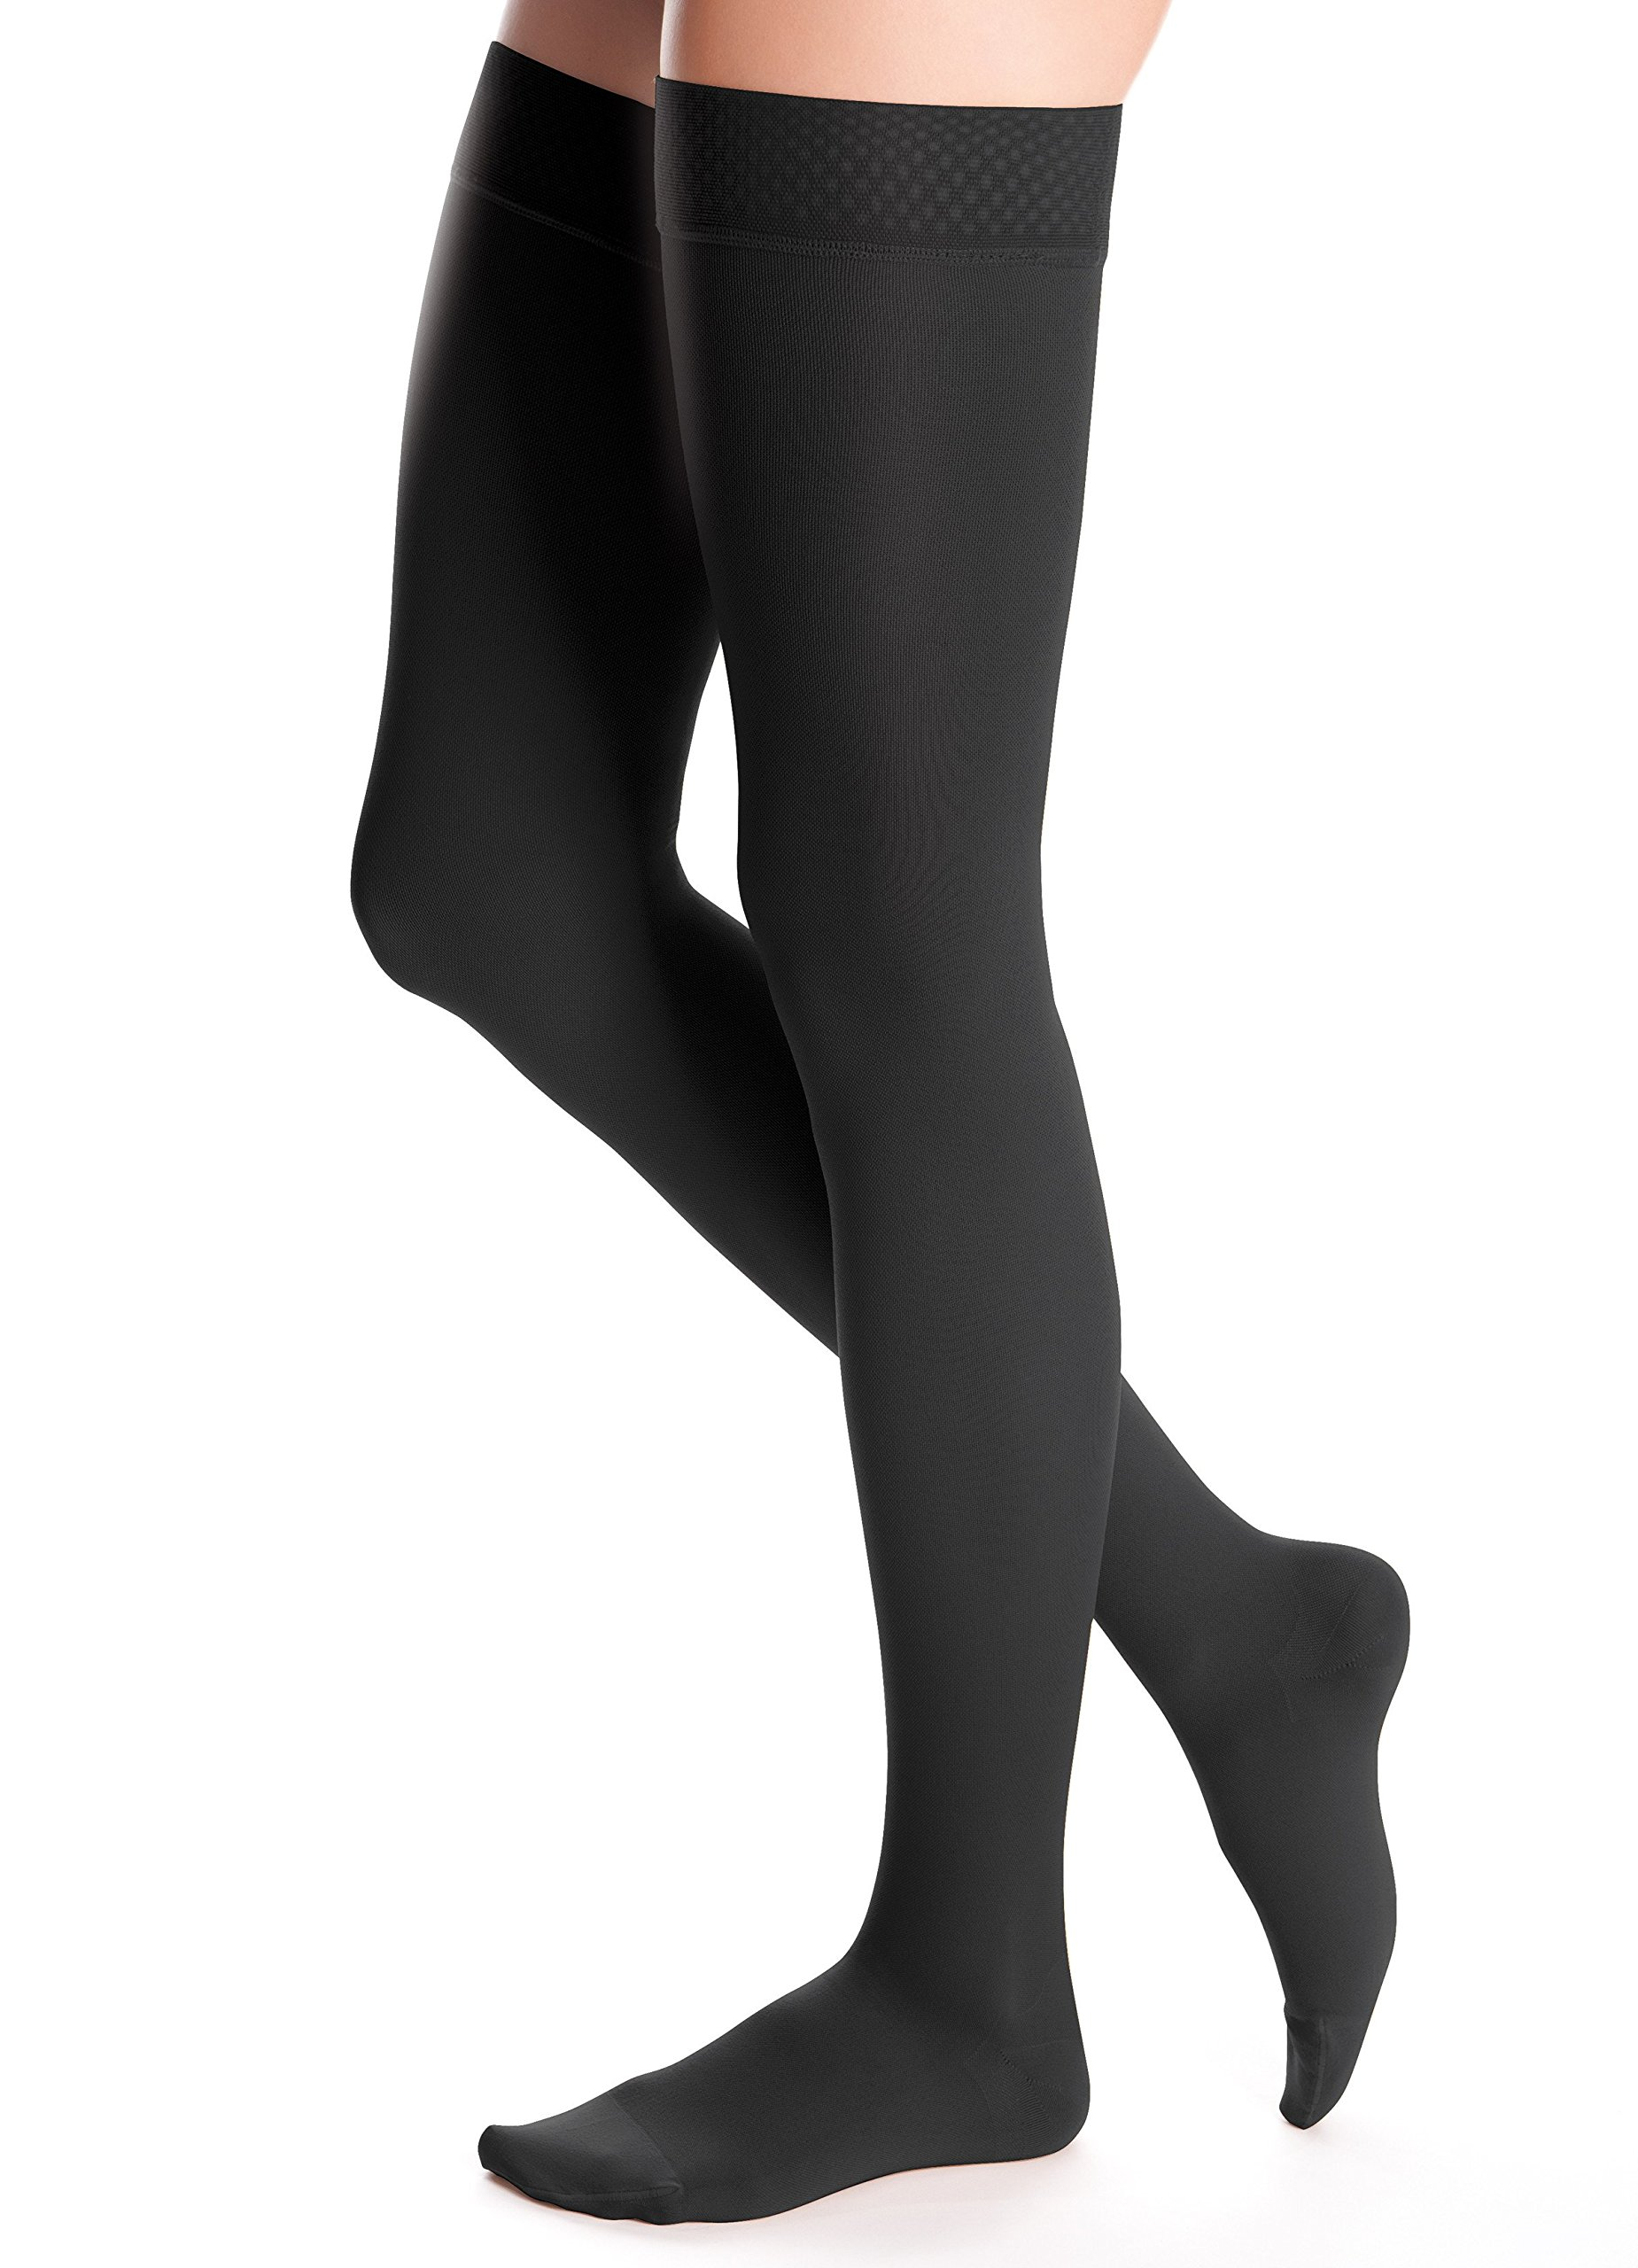 duomed Advantage, 20-30 mmHg, Thigh High with Silicone Top Band, Closed Toe